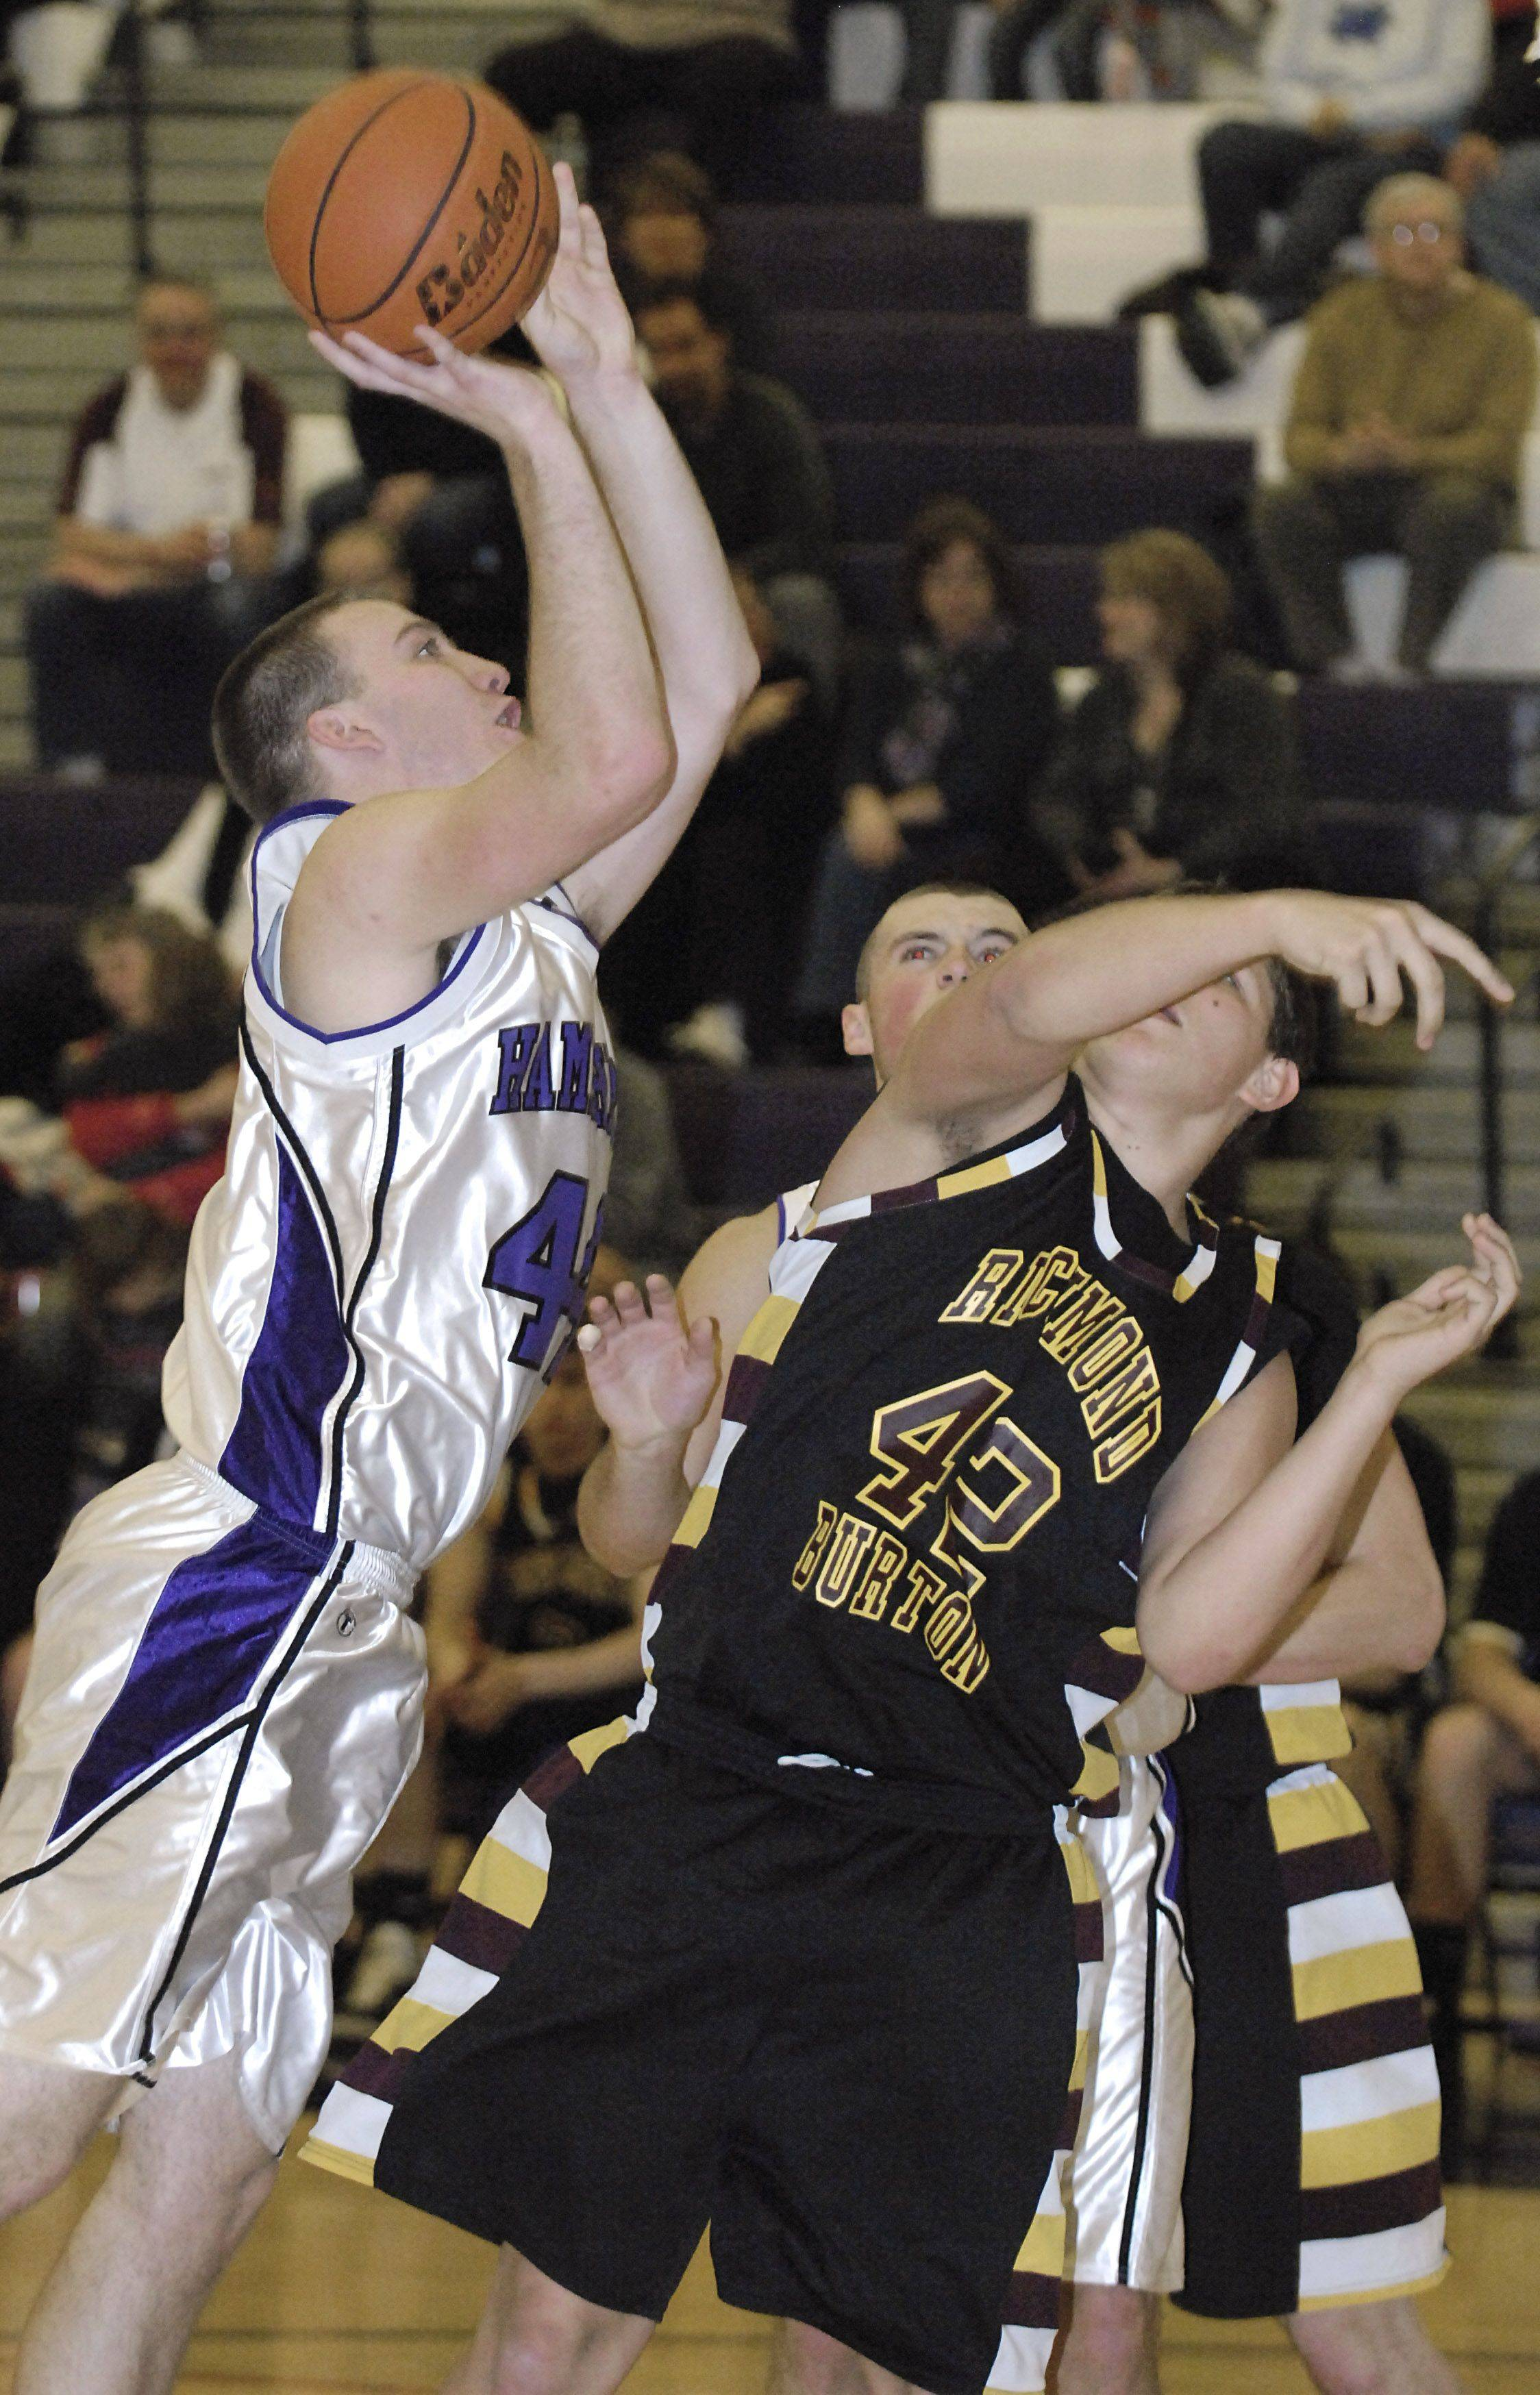 Hampshire's Tyler Watzlawick shoots over Richmond's Zach Rygiel in the second quarter on Saturday, January 8.